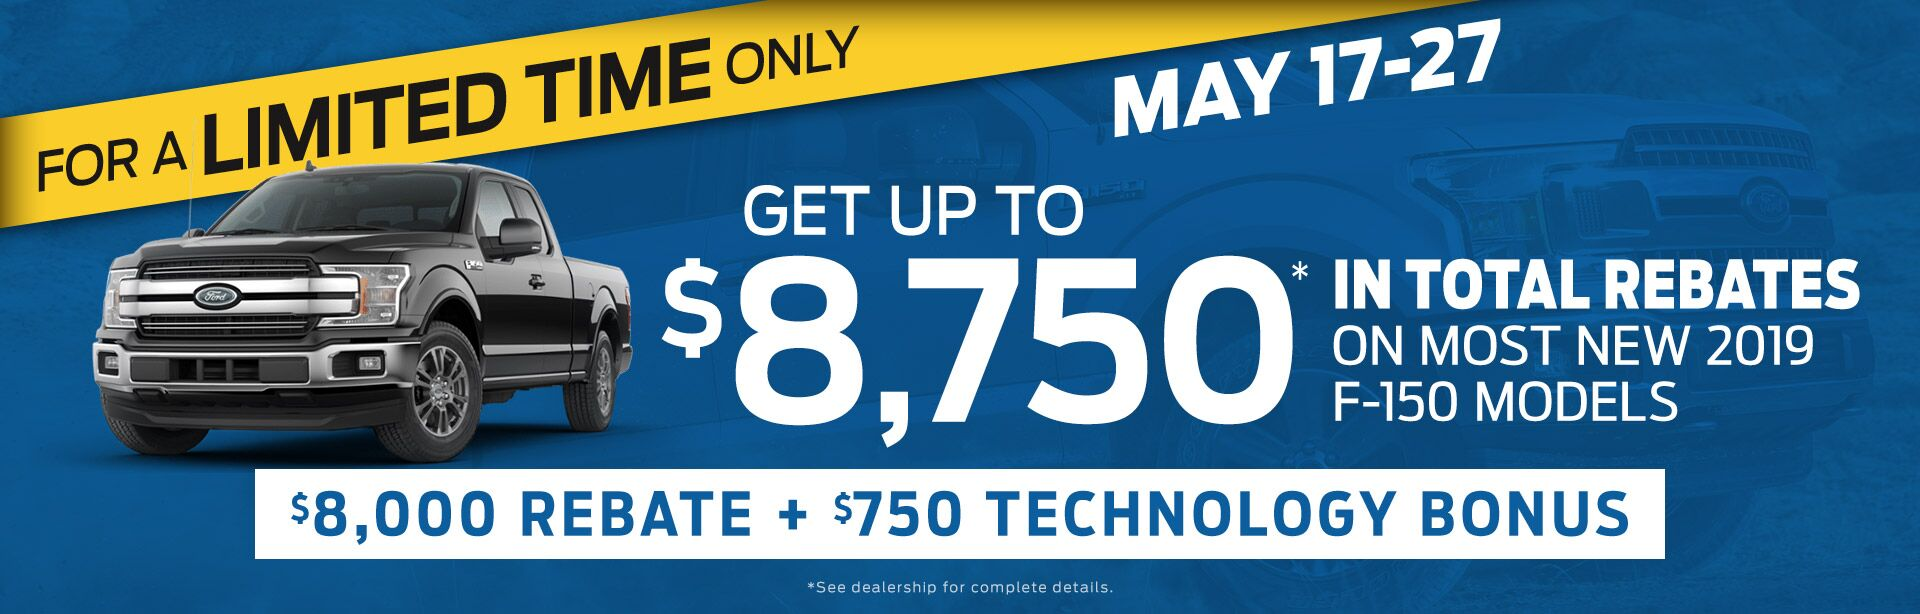 Get Up to 8,750 in Total Rebates